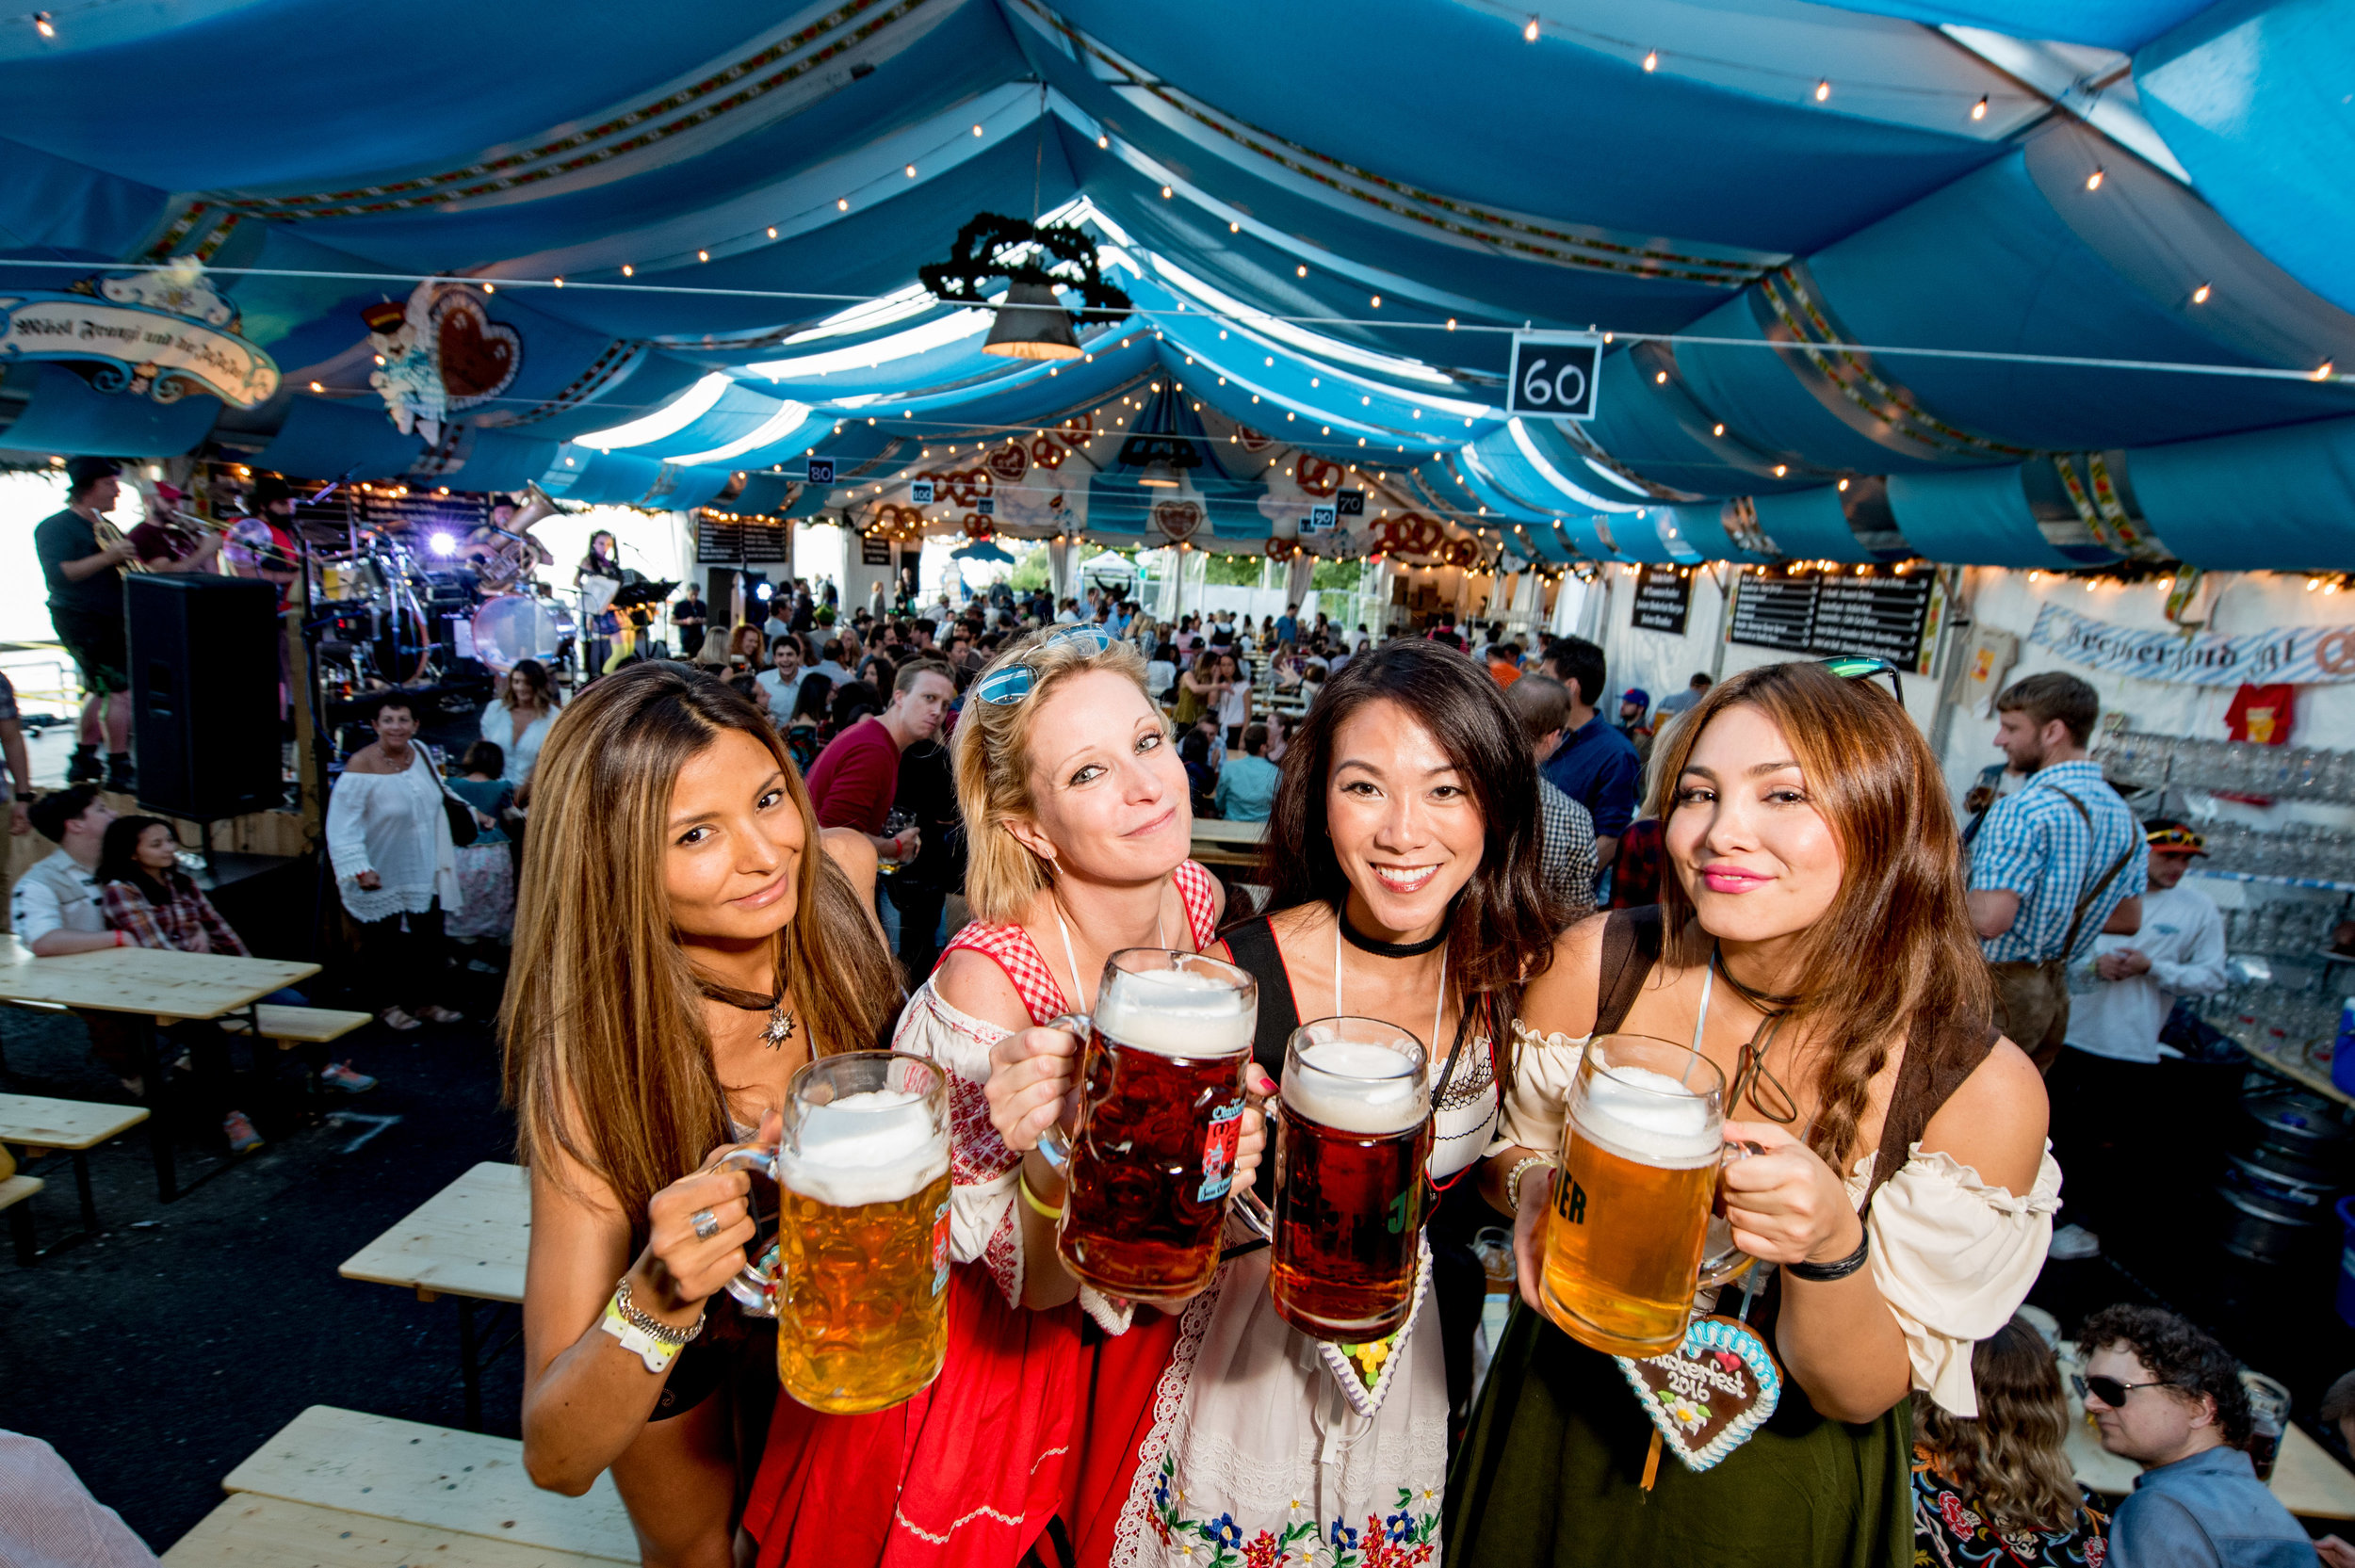 Oktoberfest Tent   Munich on the East River   in NYC     Zum Schneider     zum schneider nyc 2016 oktoberfest 4293 jpg